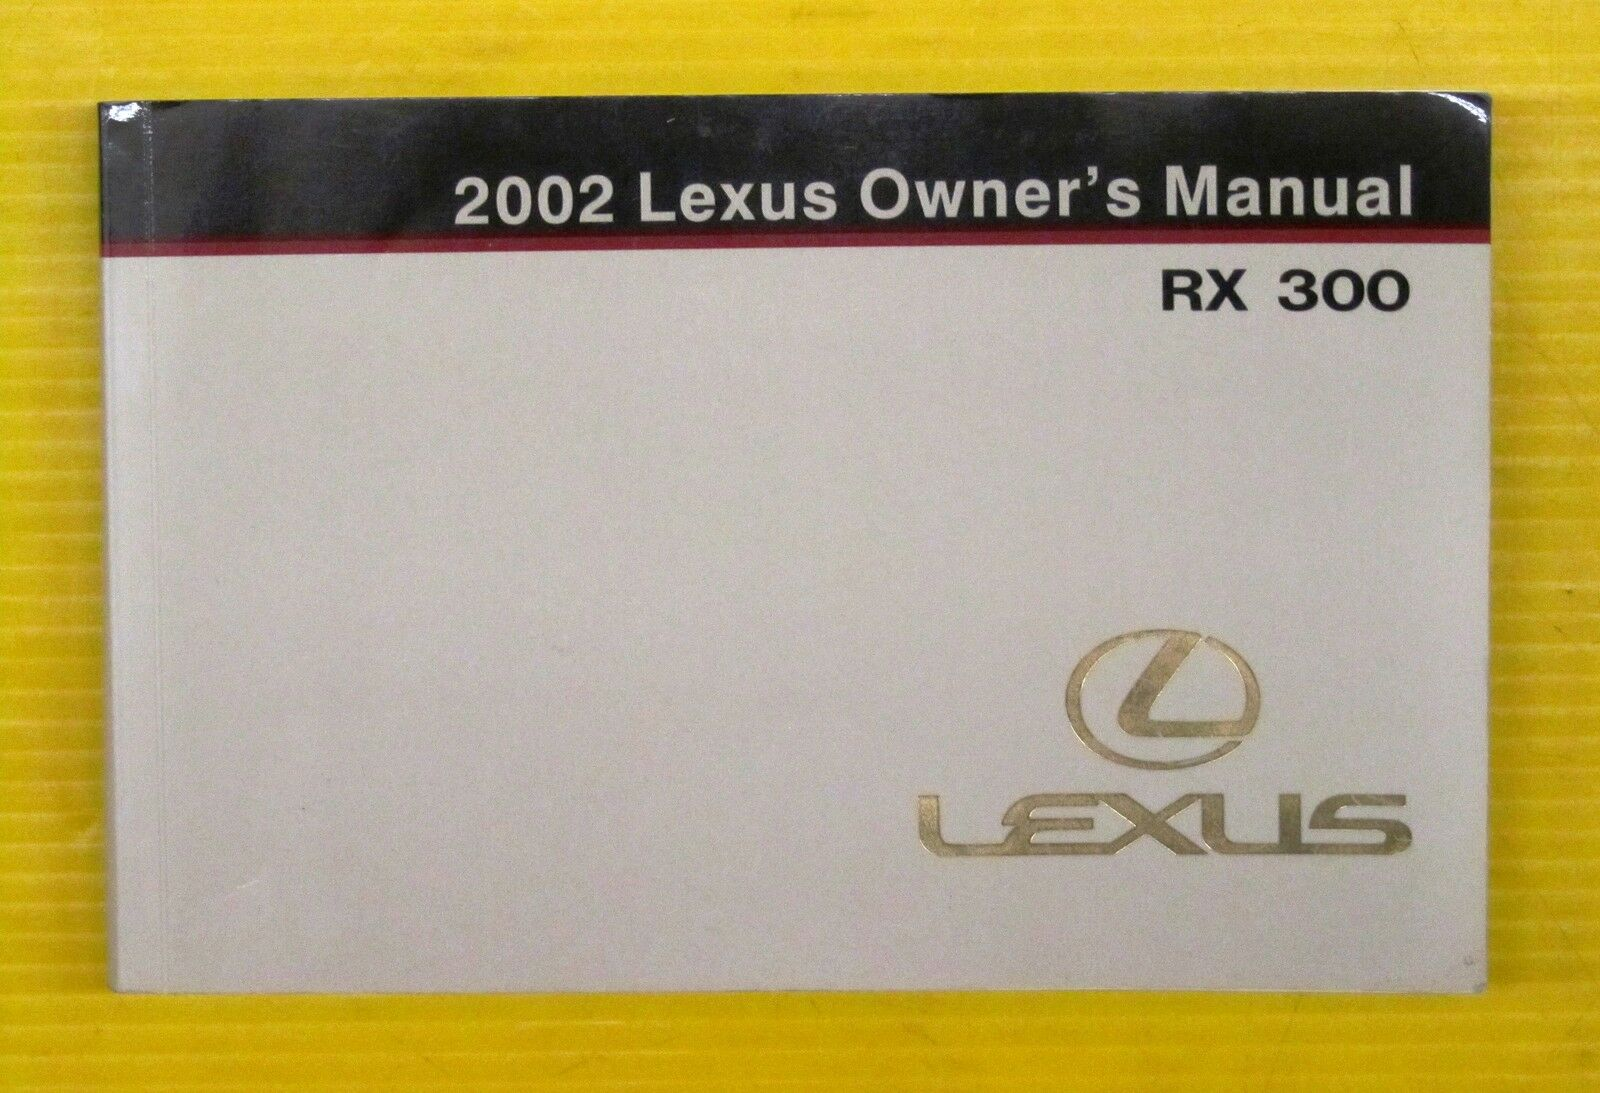 RX 300 RX300 SUV 02 2002 Lexus Owners Owner's Manual 4X4 4X2 1 of 1Only 1  available See More